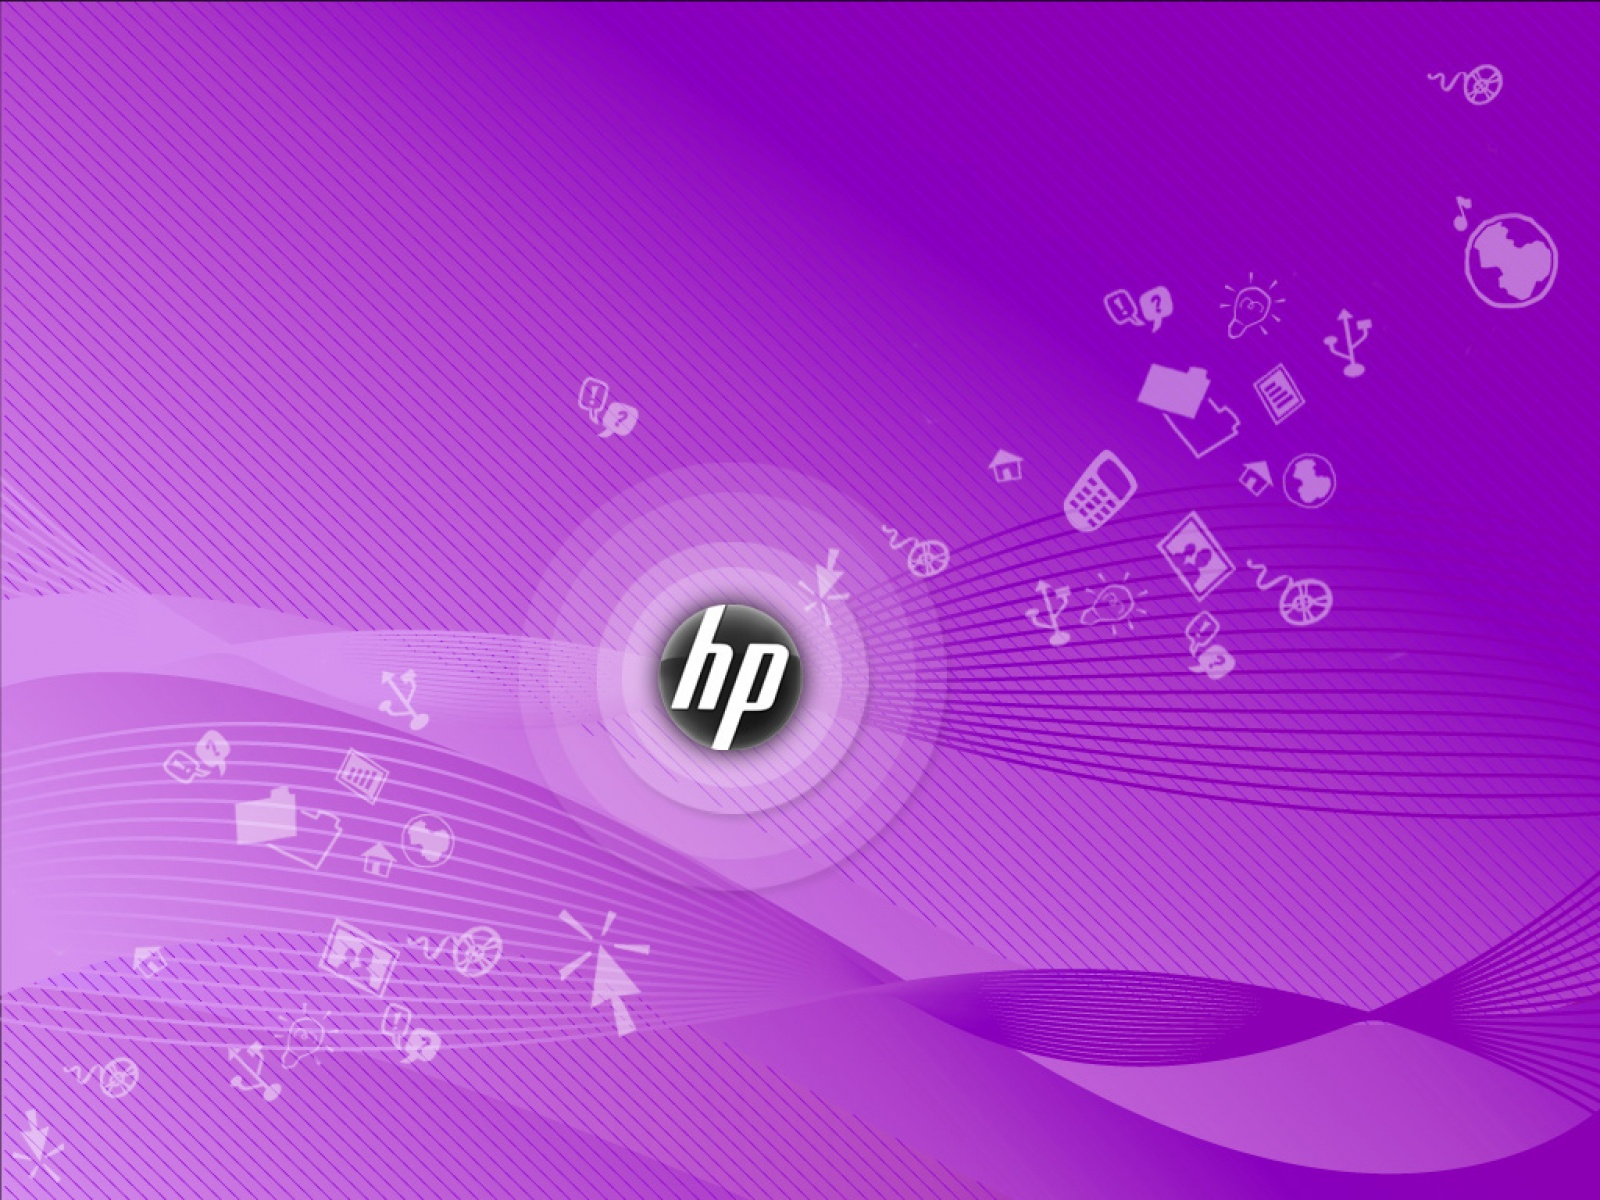 Style For HP Wallpapers - 1600x1200 - 596117